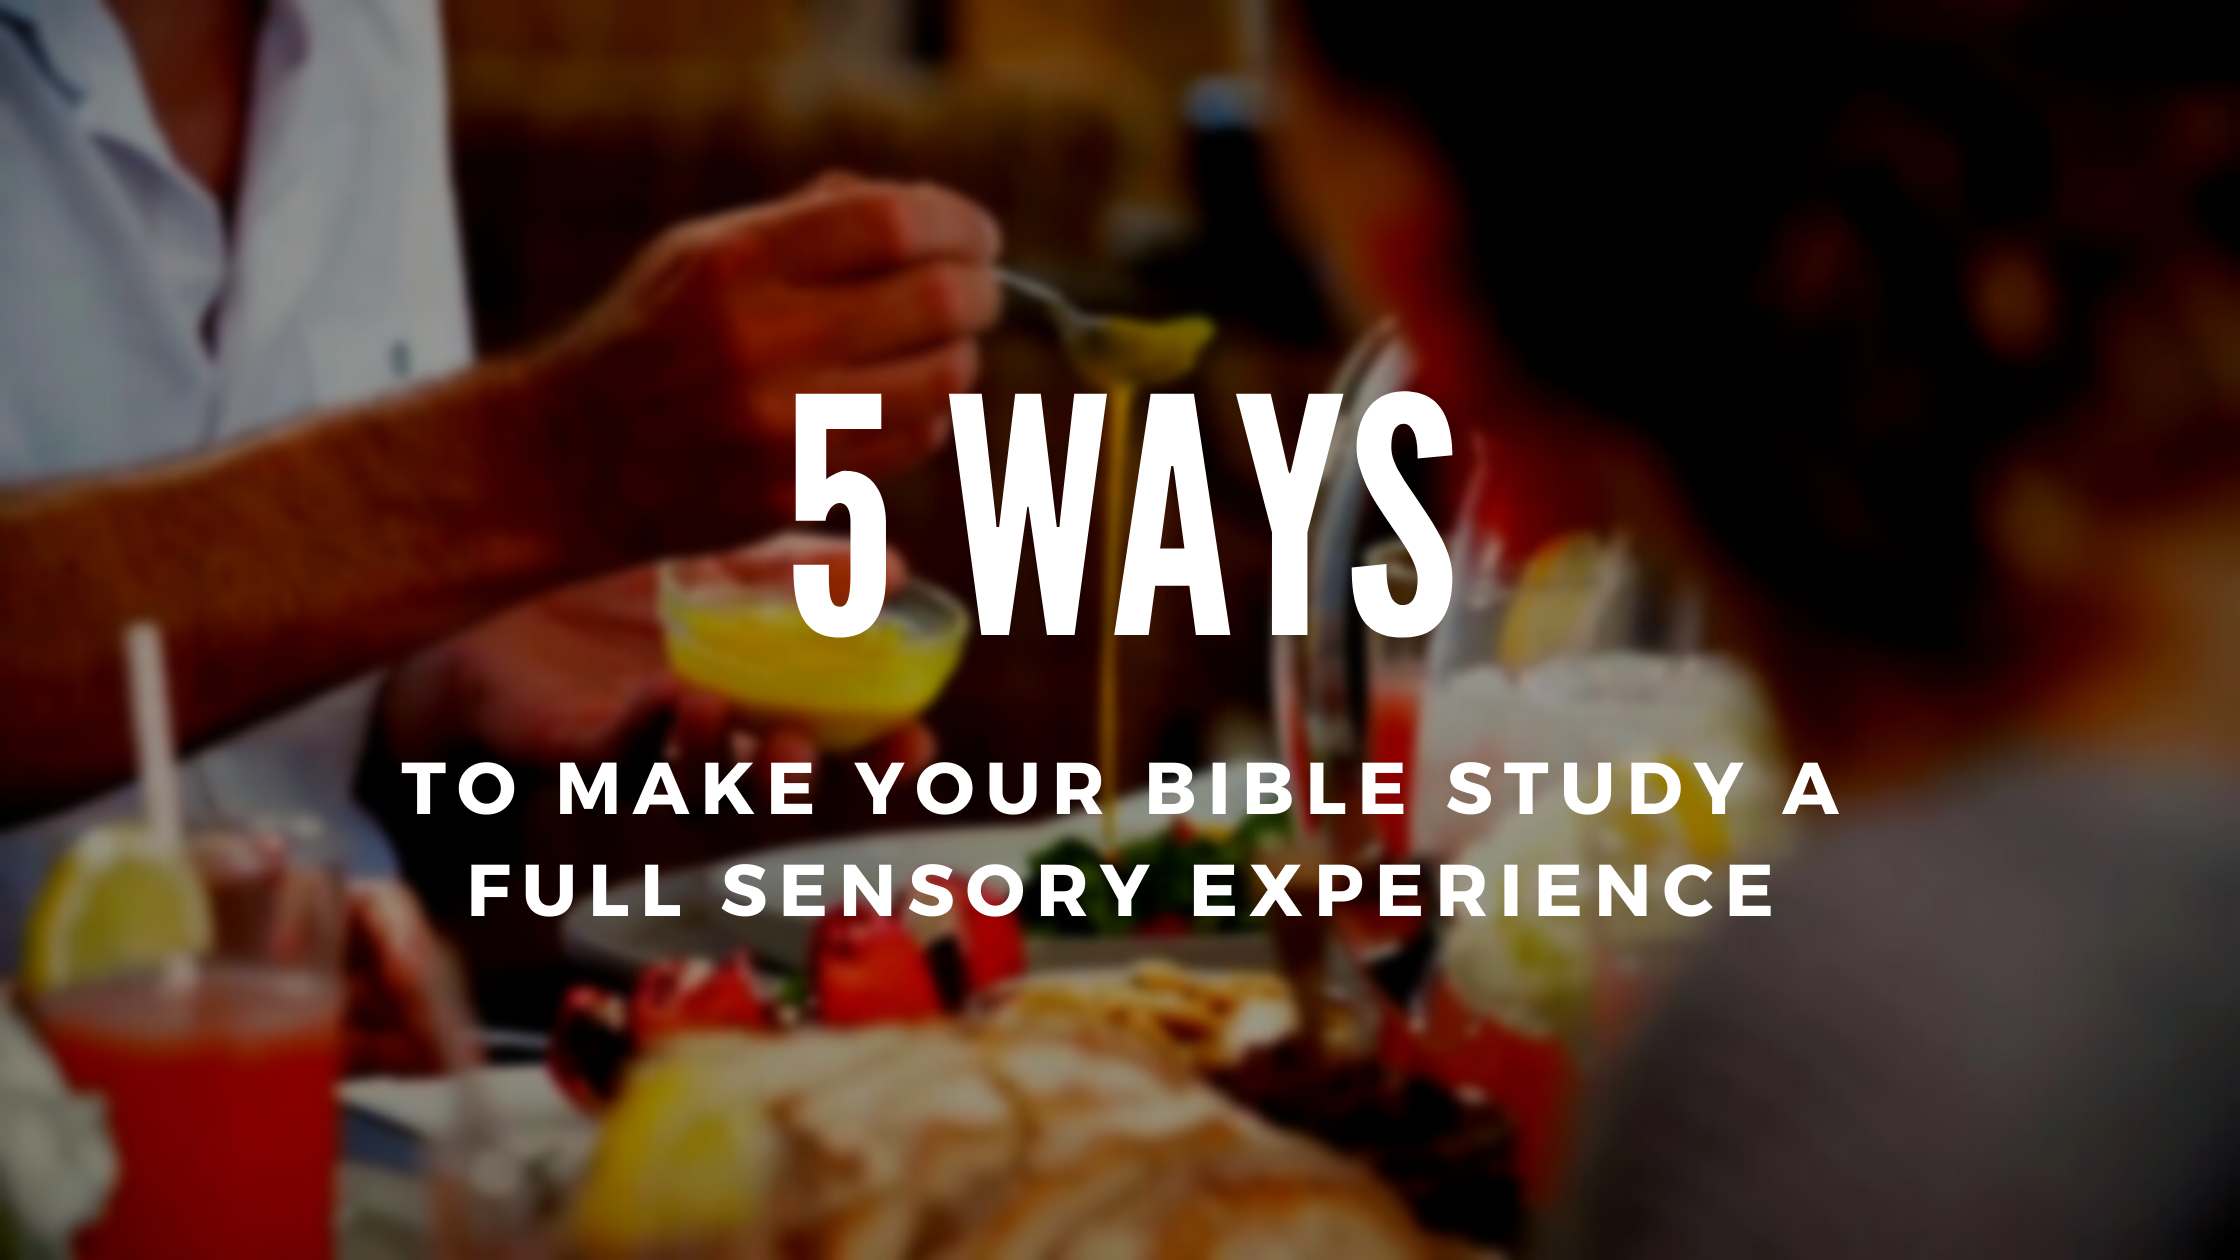 5 Ways to Make Your Bible Study a Full Sensory Experience | Margaret Feinberg